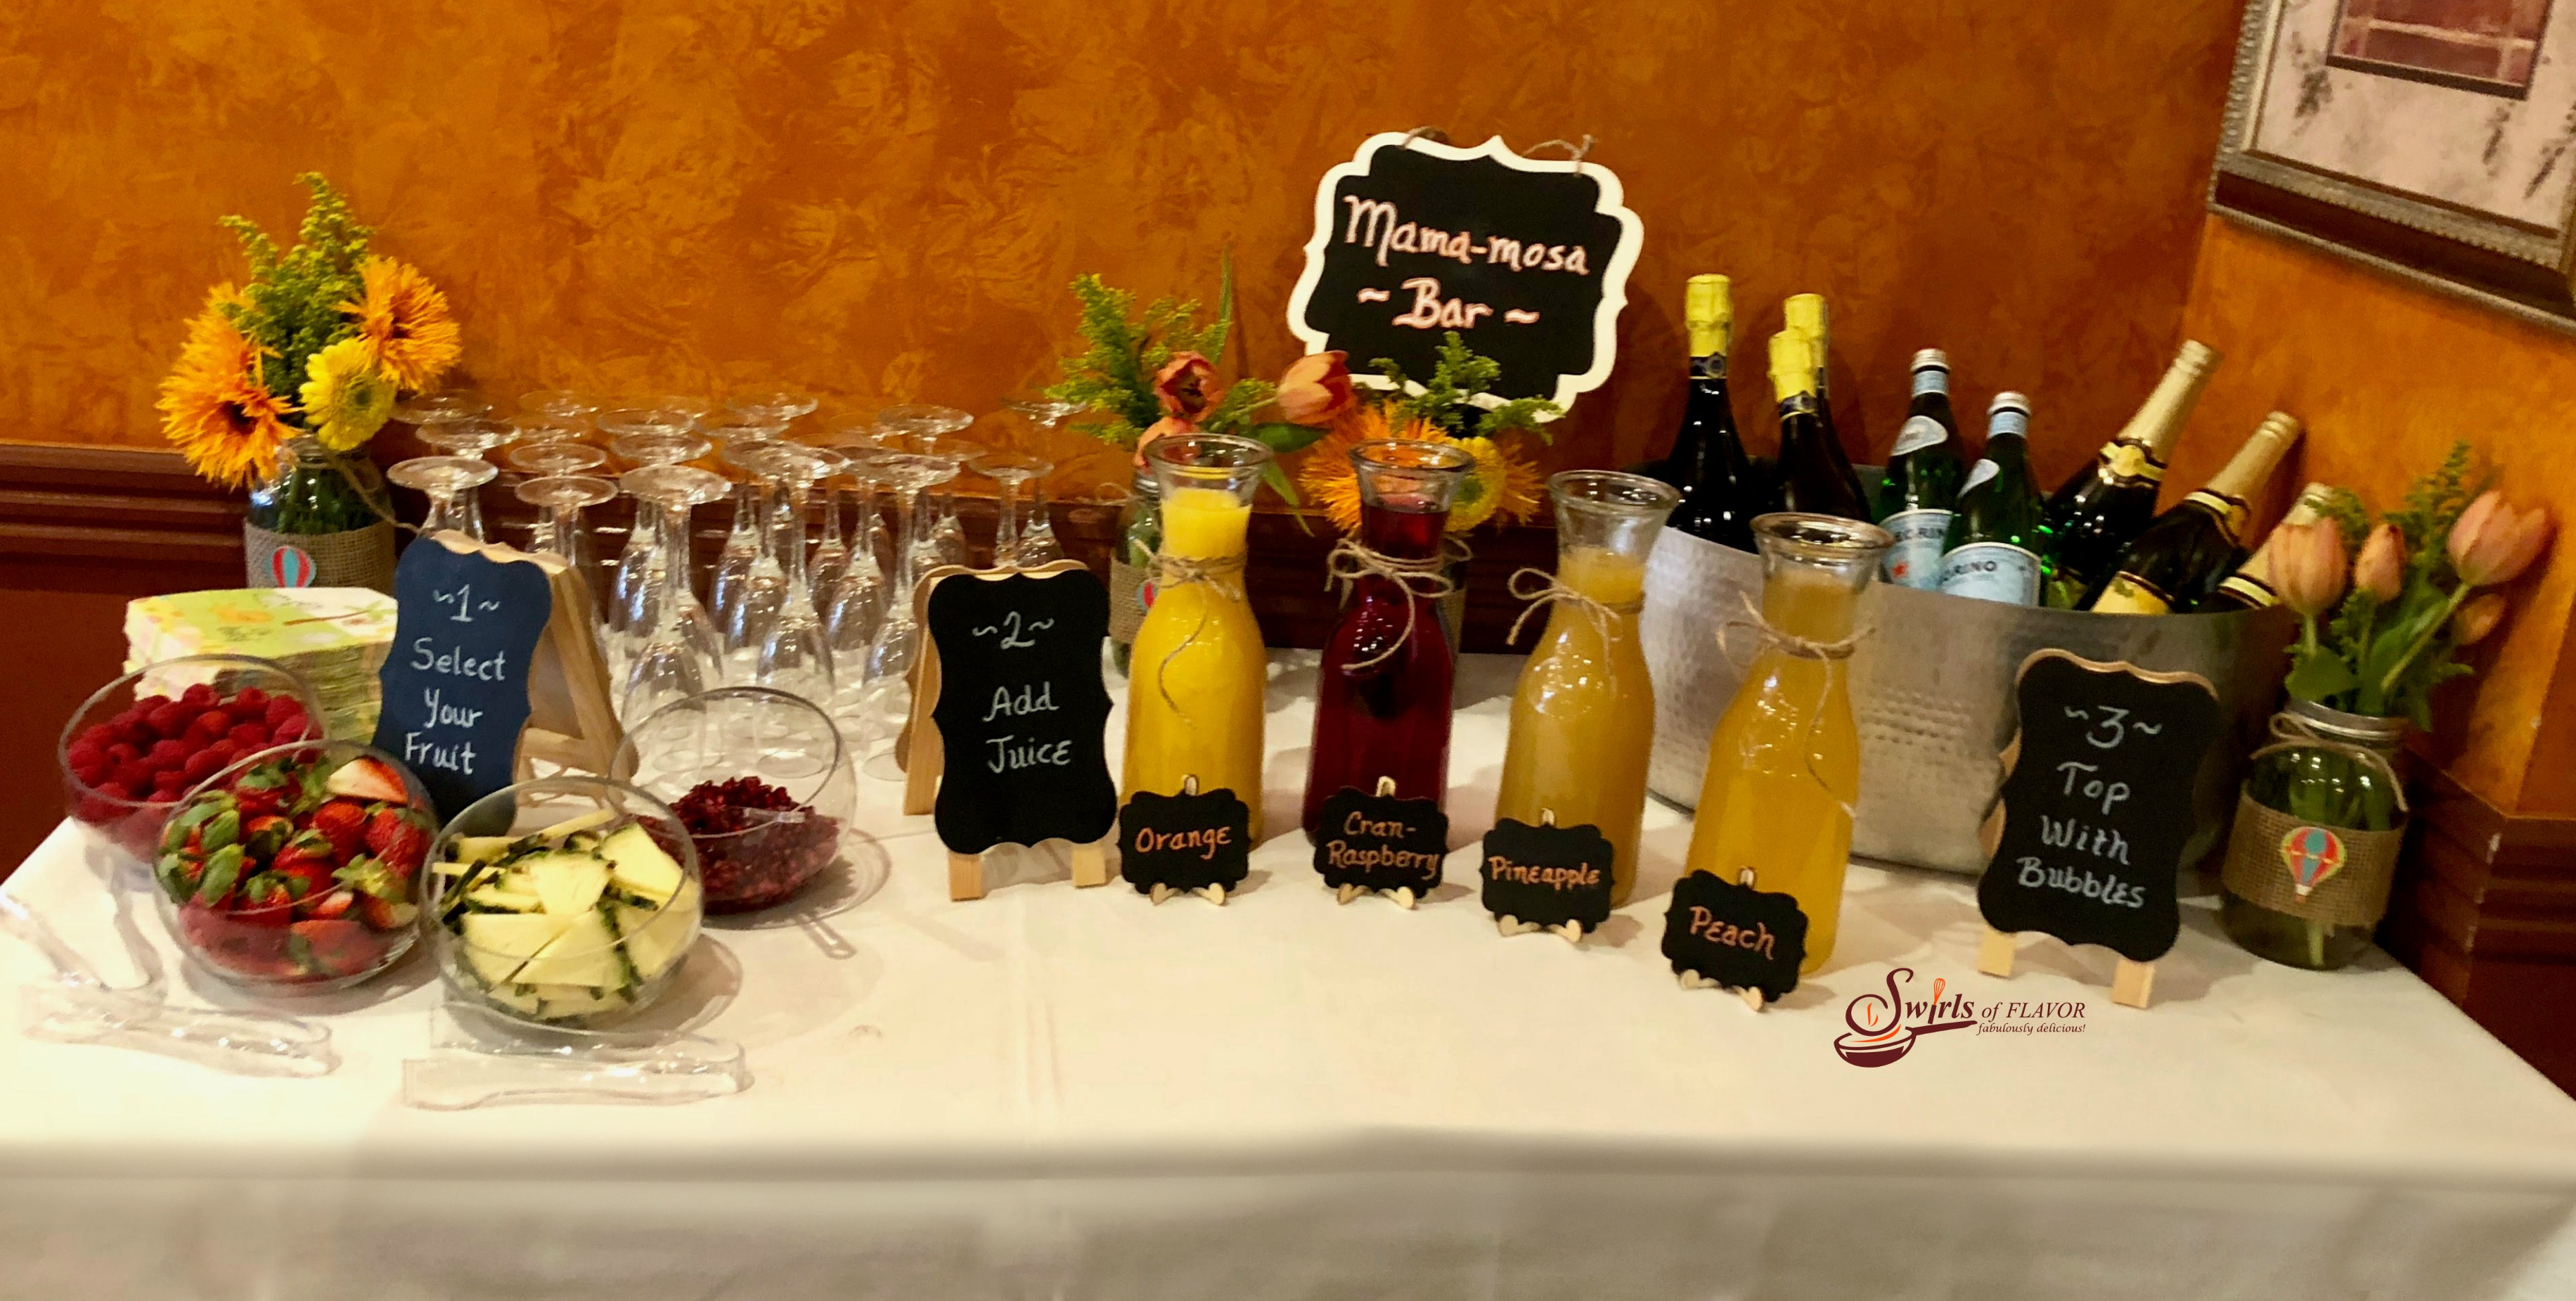 A Mimosa Bar with fresh fruit, juices and sparkling wine